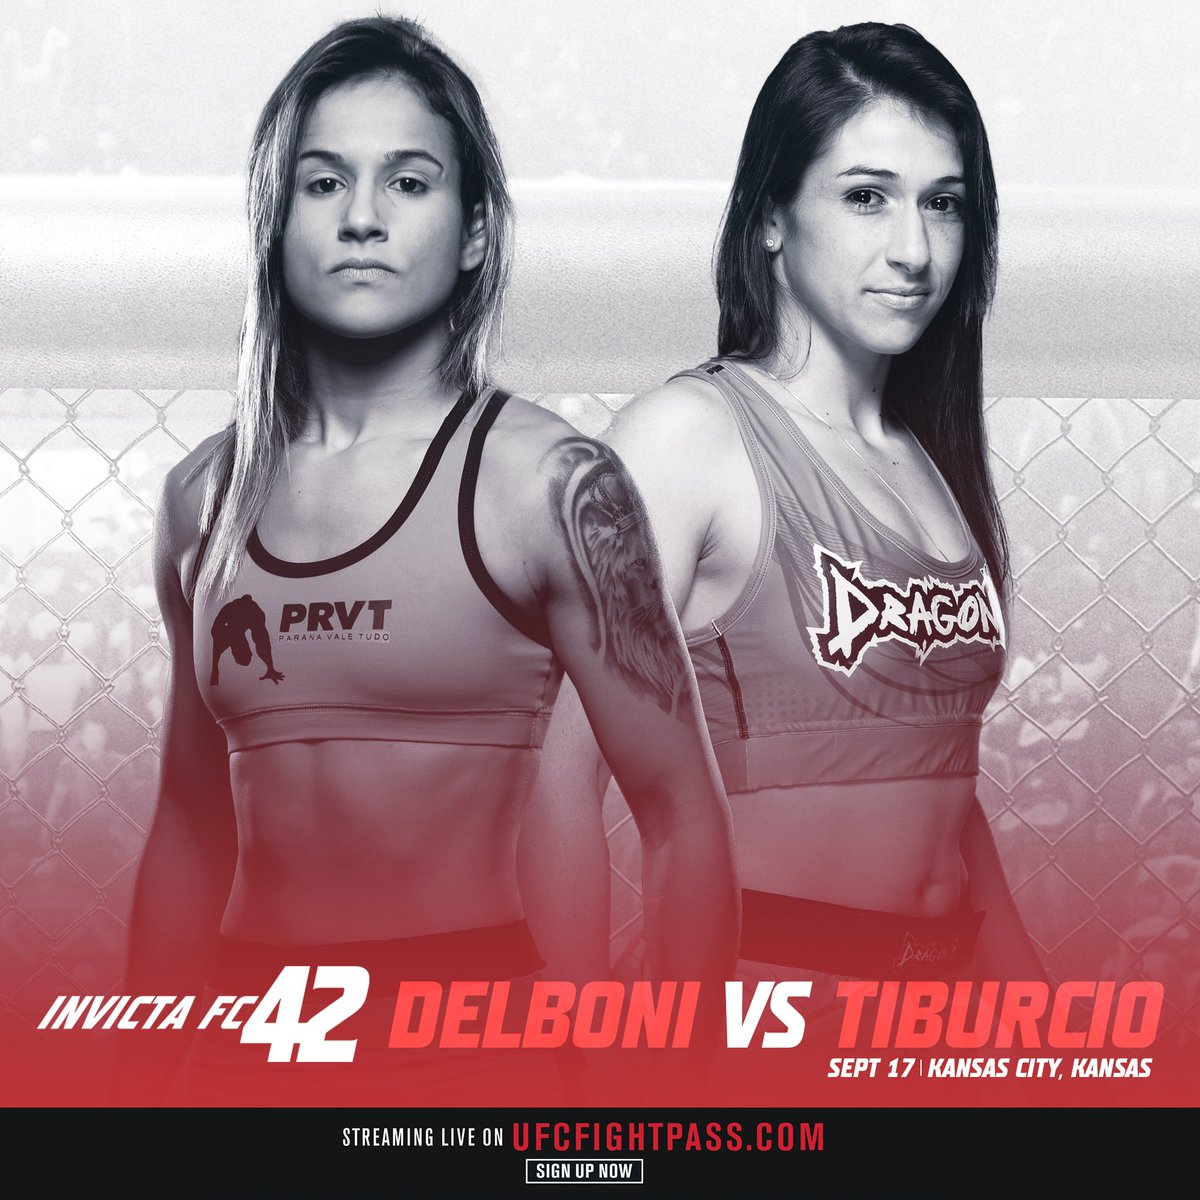 Brazilian veteran Jéssica Delboni faces former atomweight champion @Herica_tiburcio in a strawweight match-up at #InvictaFC42! https://t.co/1eYRW5NgSy